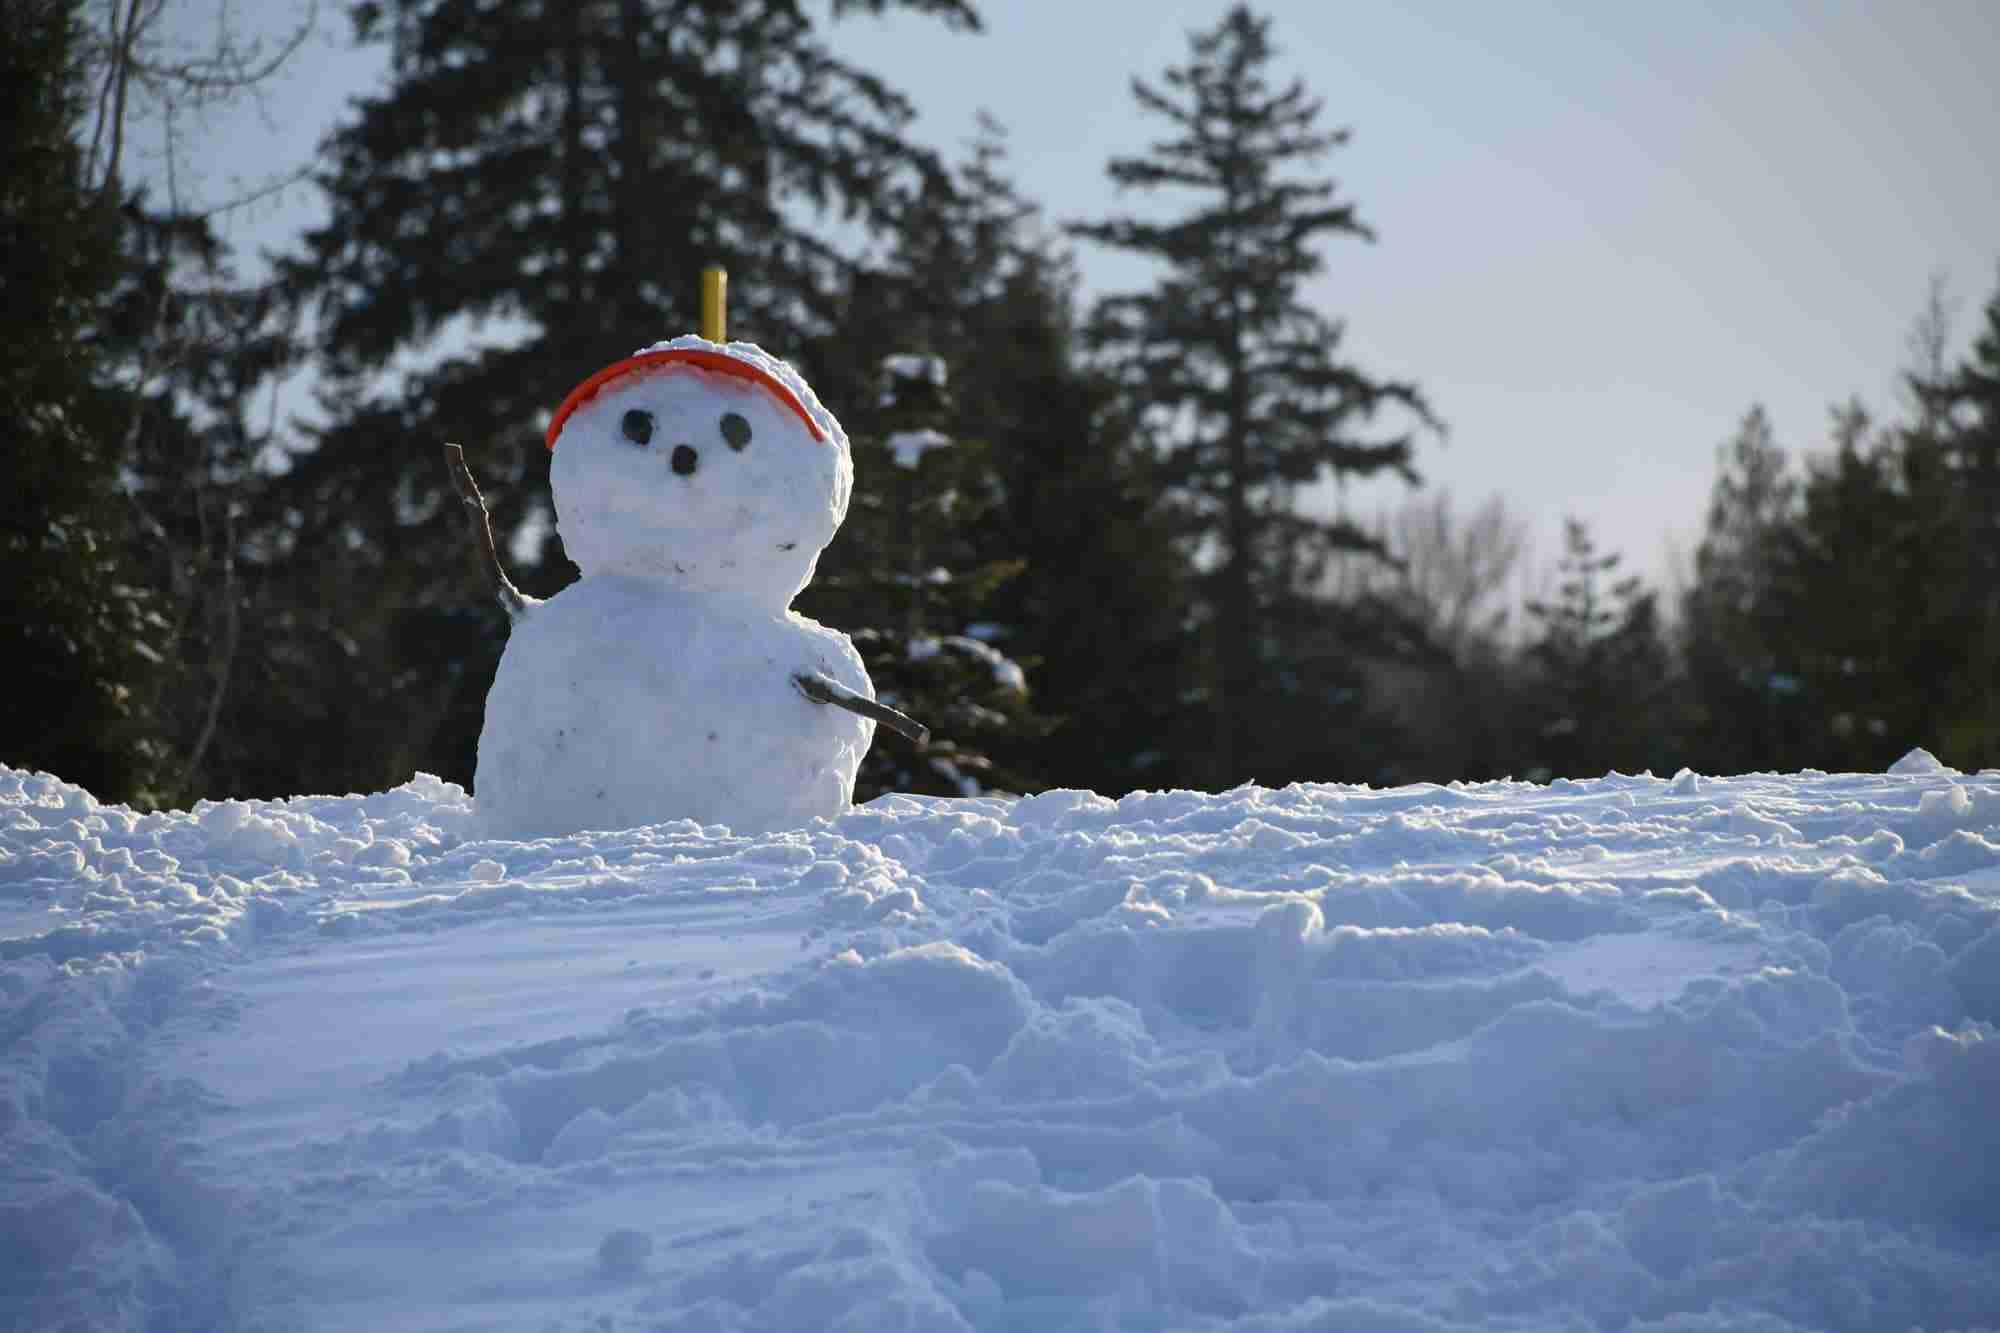 Snowman with stick hands and red cap